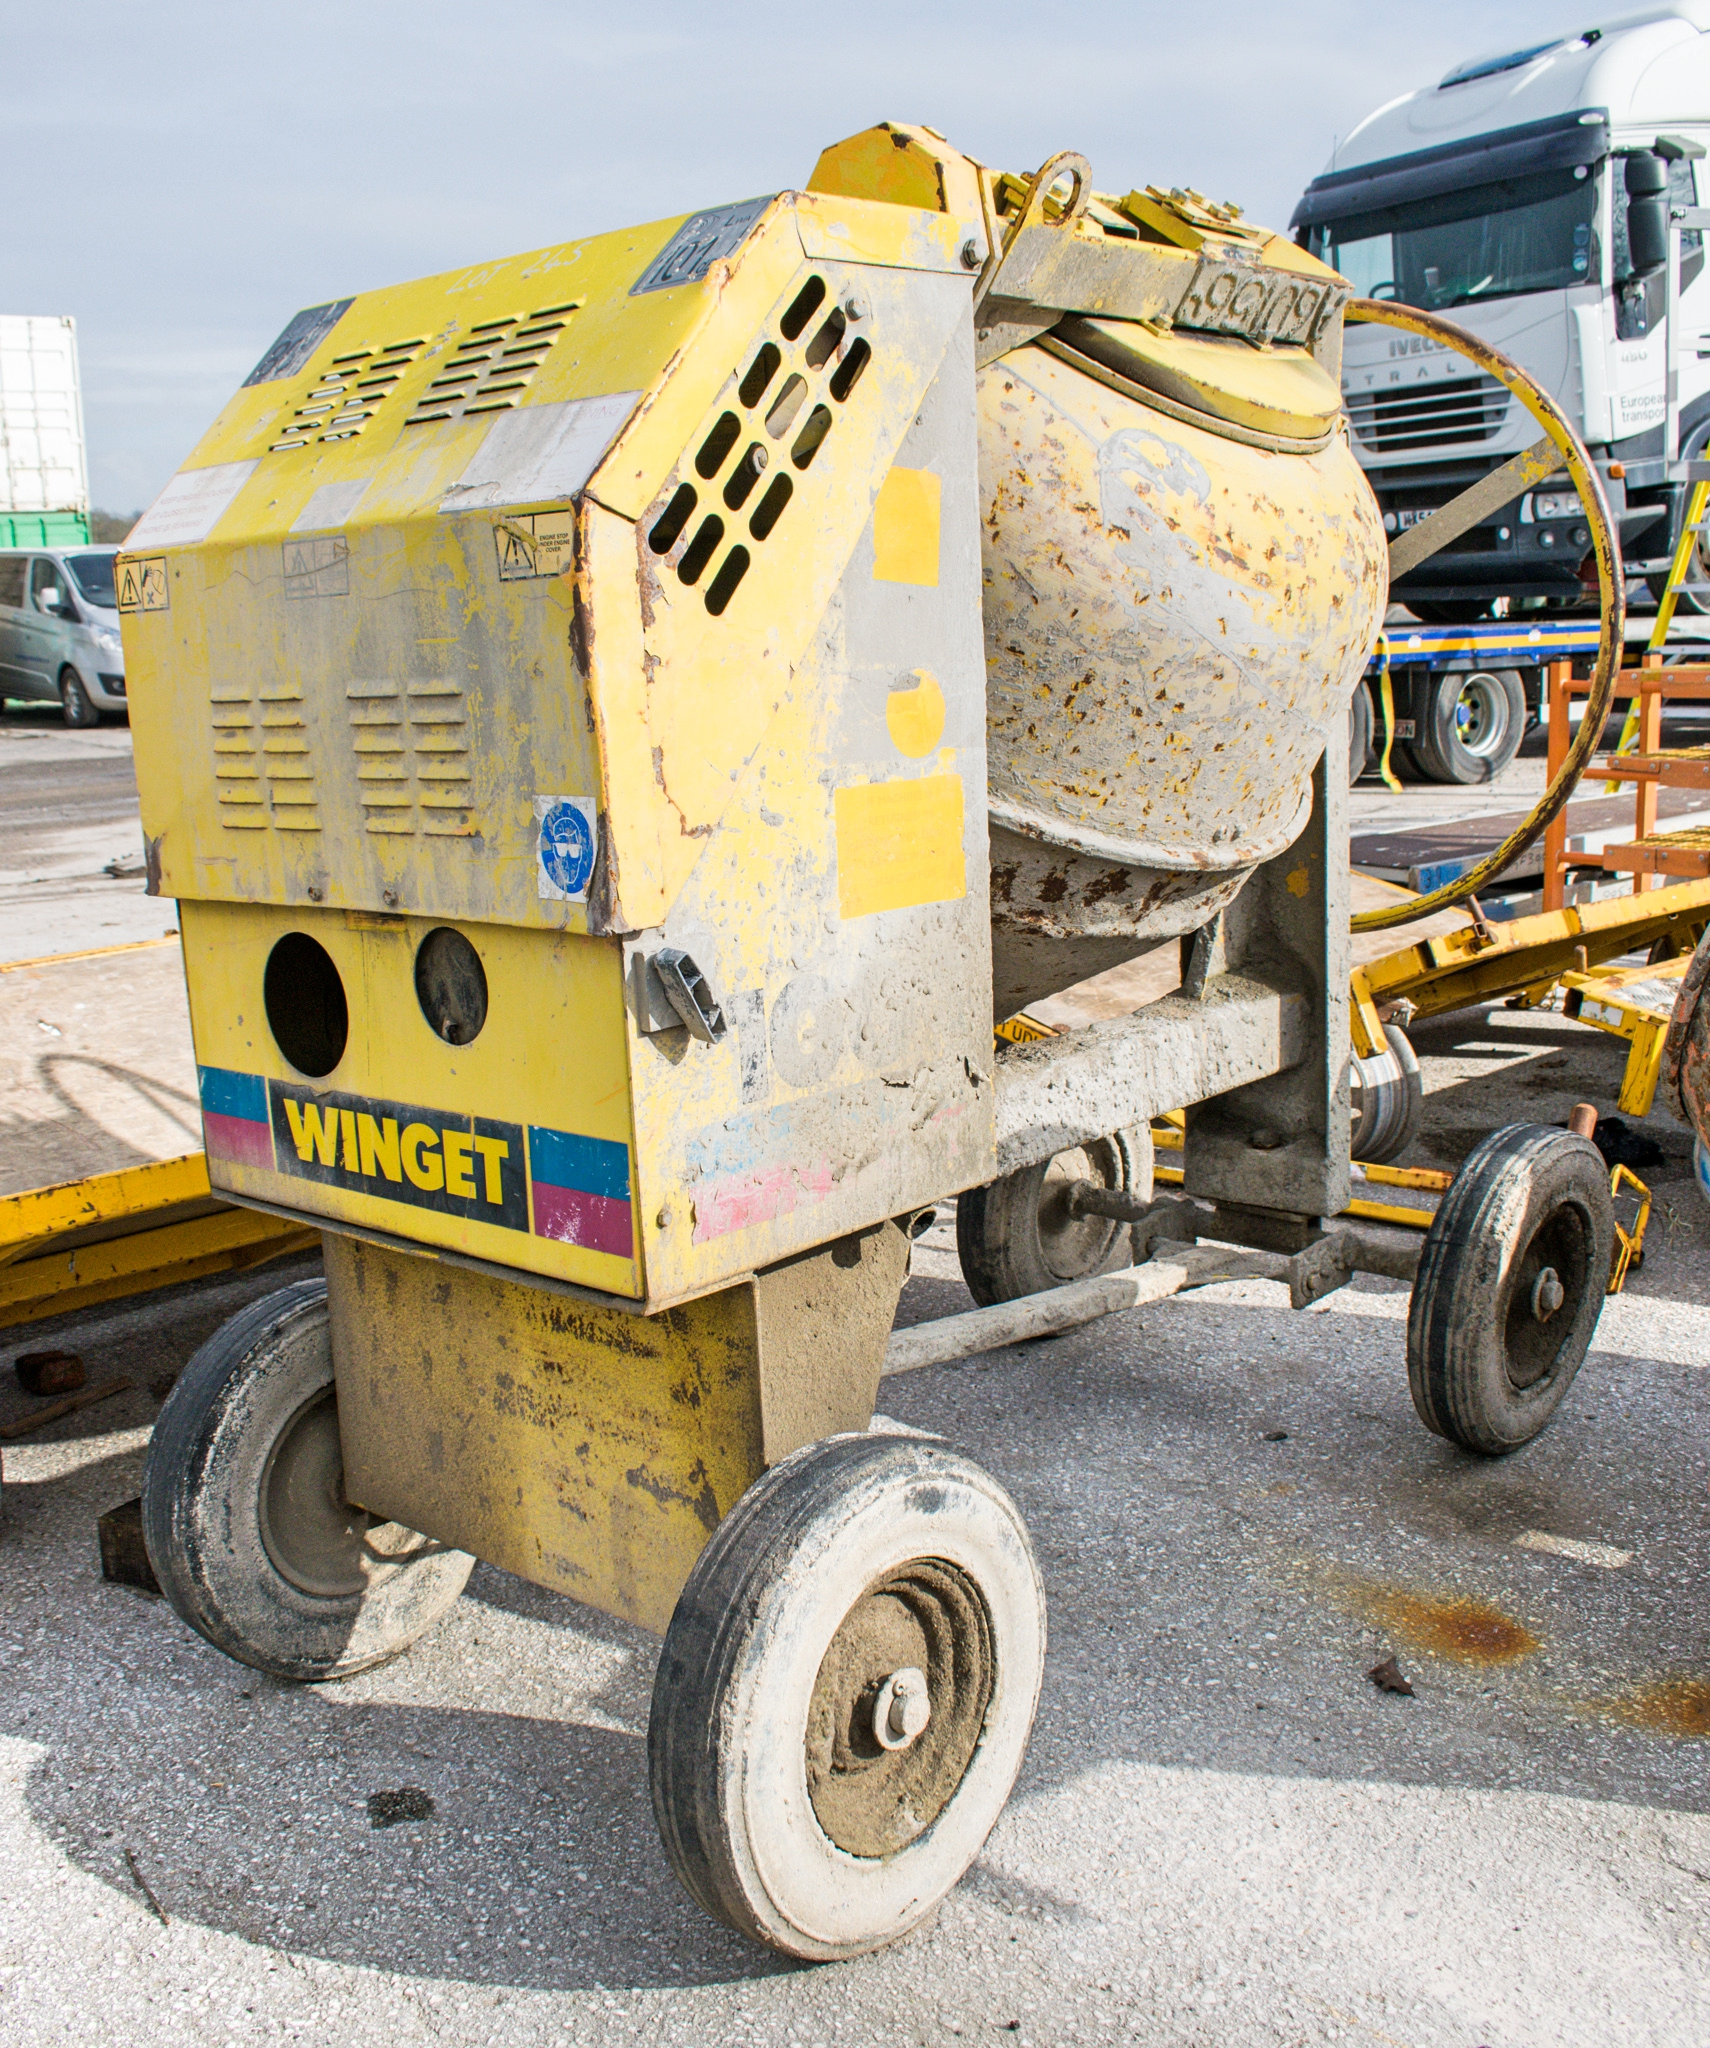 Winget electric start diesel driven site mixer A601569 - Image 2 of 3